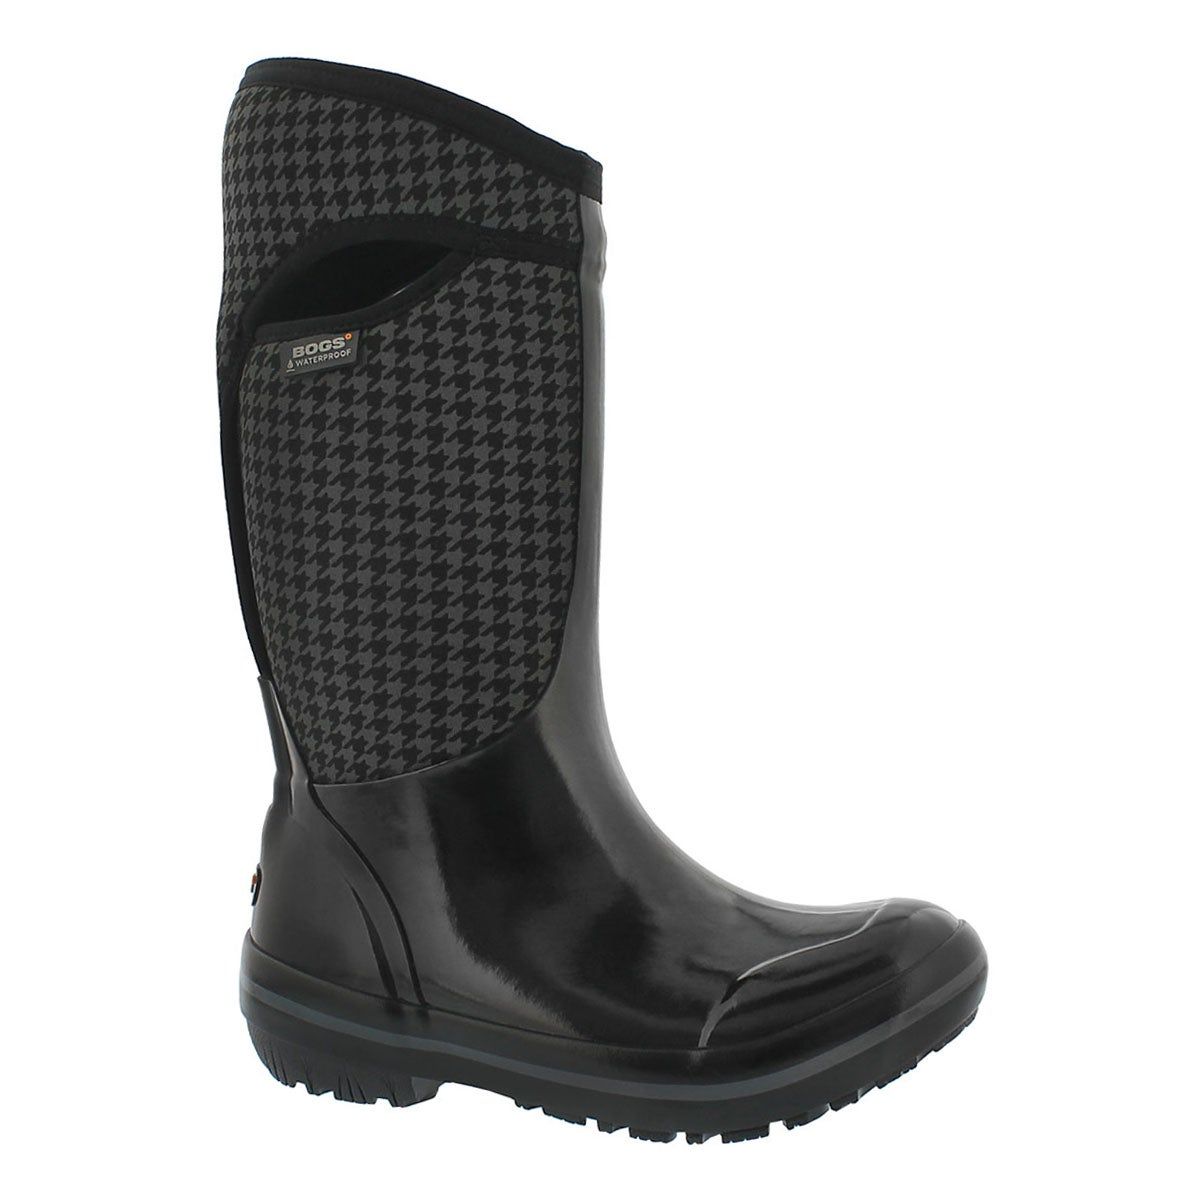 Women's PLIMSOLL HOUNDSTOOTH TALL waterproof boots